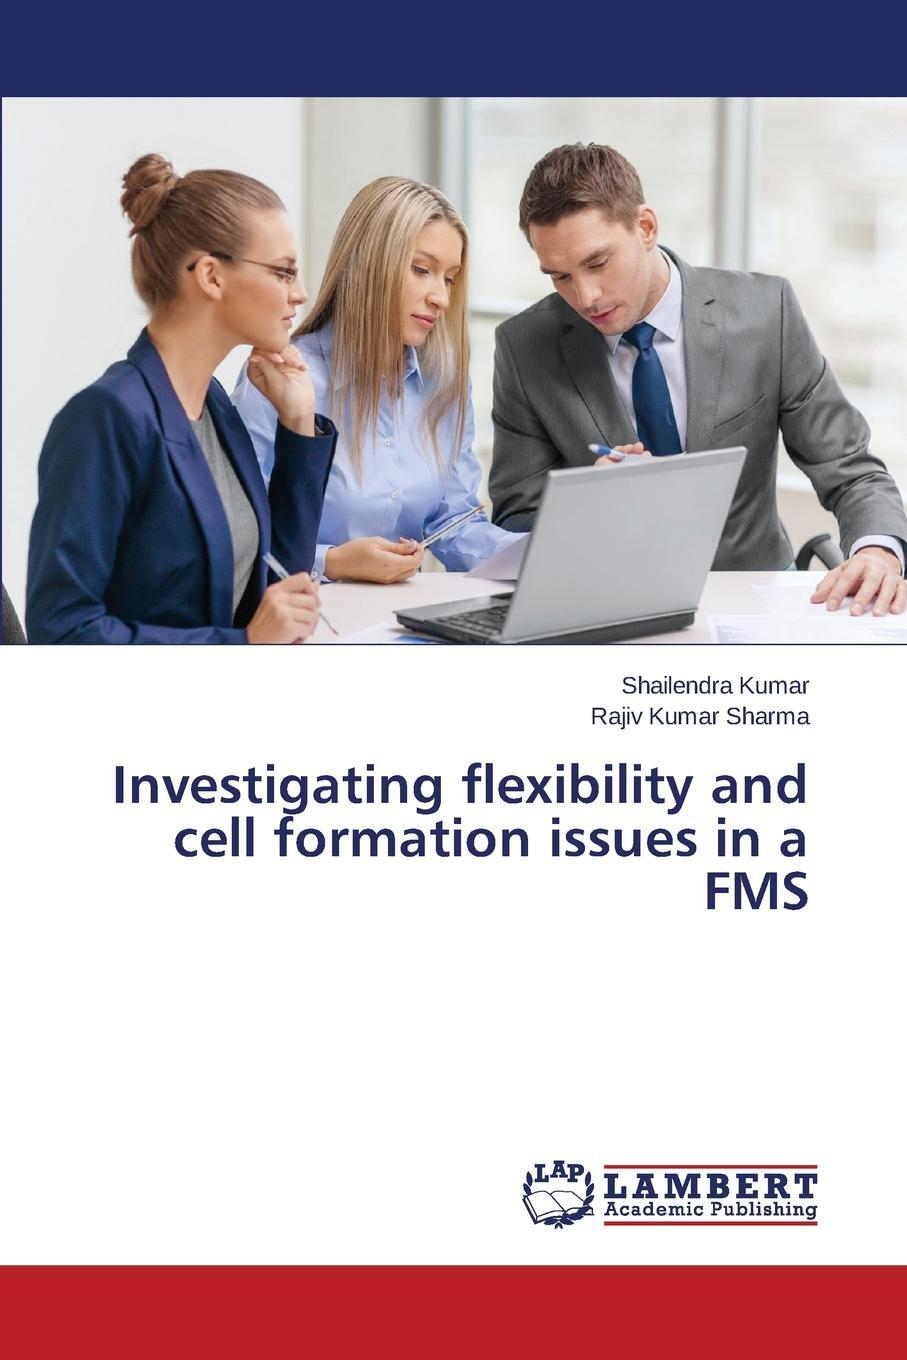 Investigating flexibility and cell formation issues in a FMS